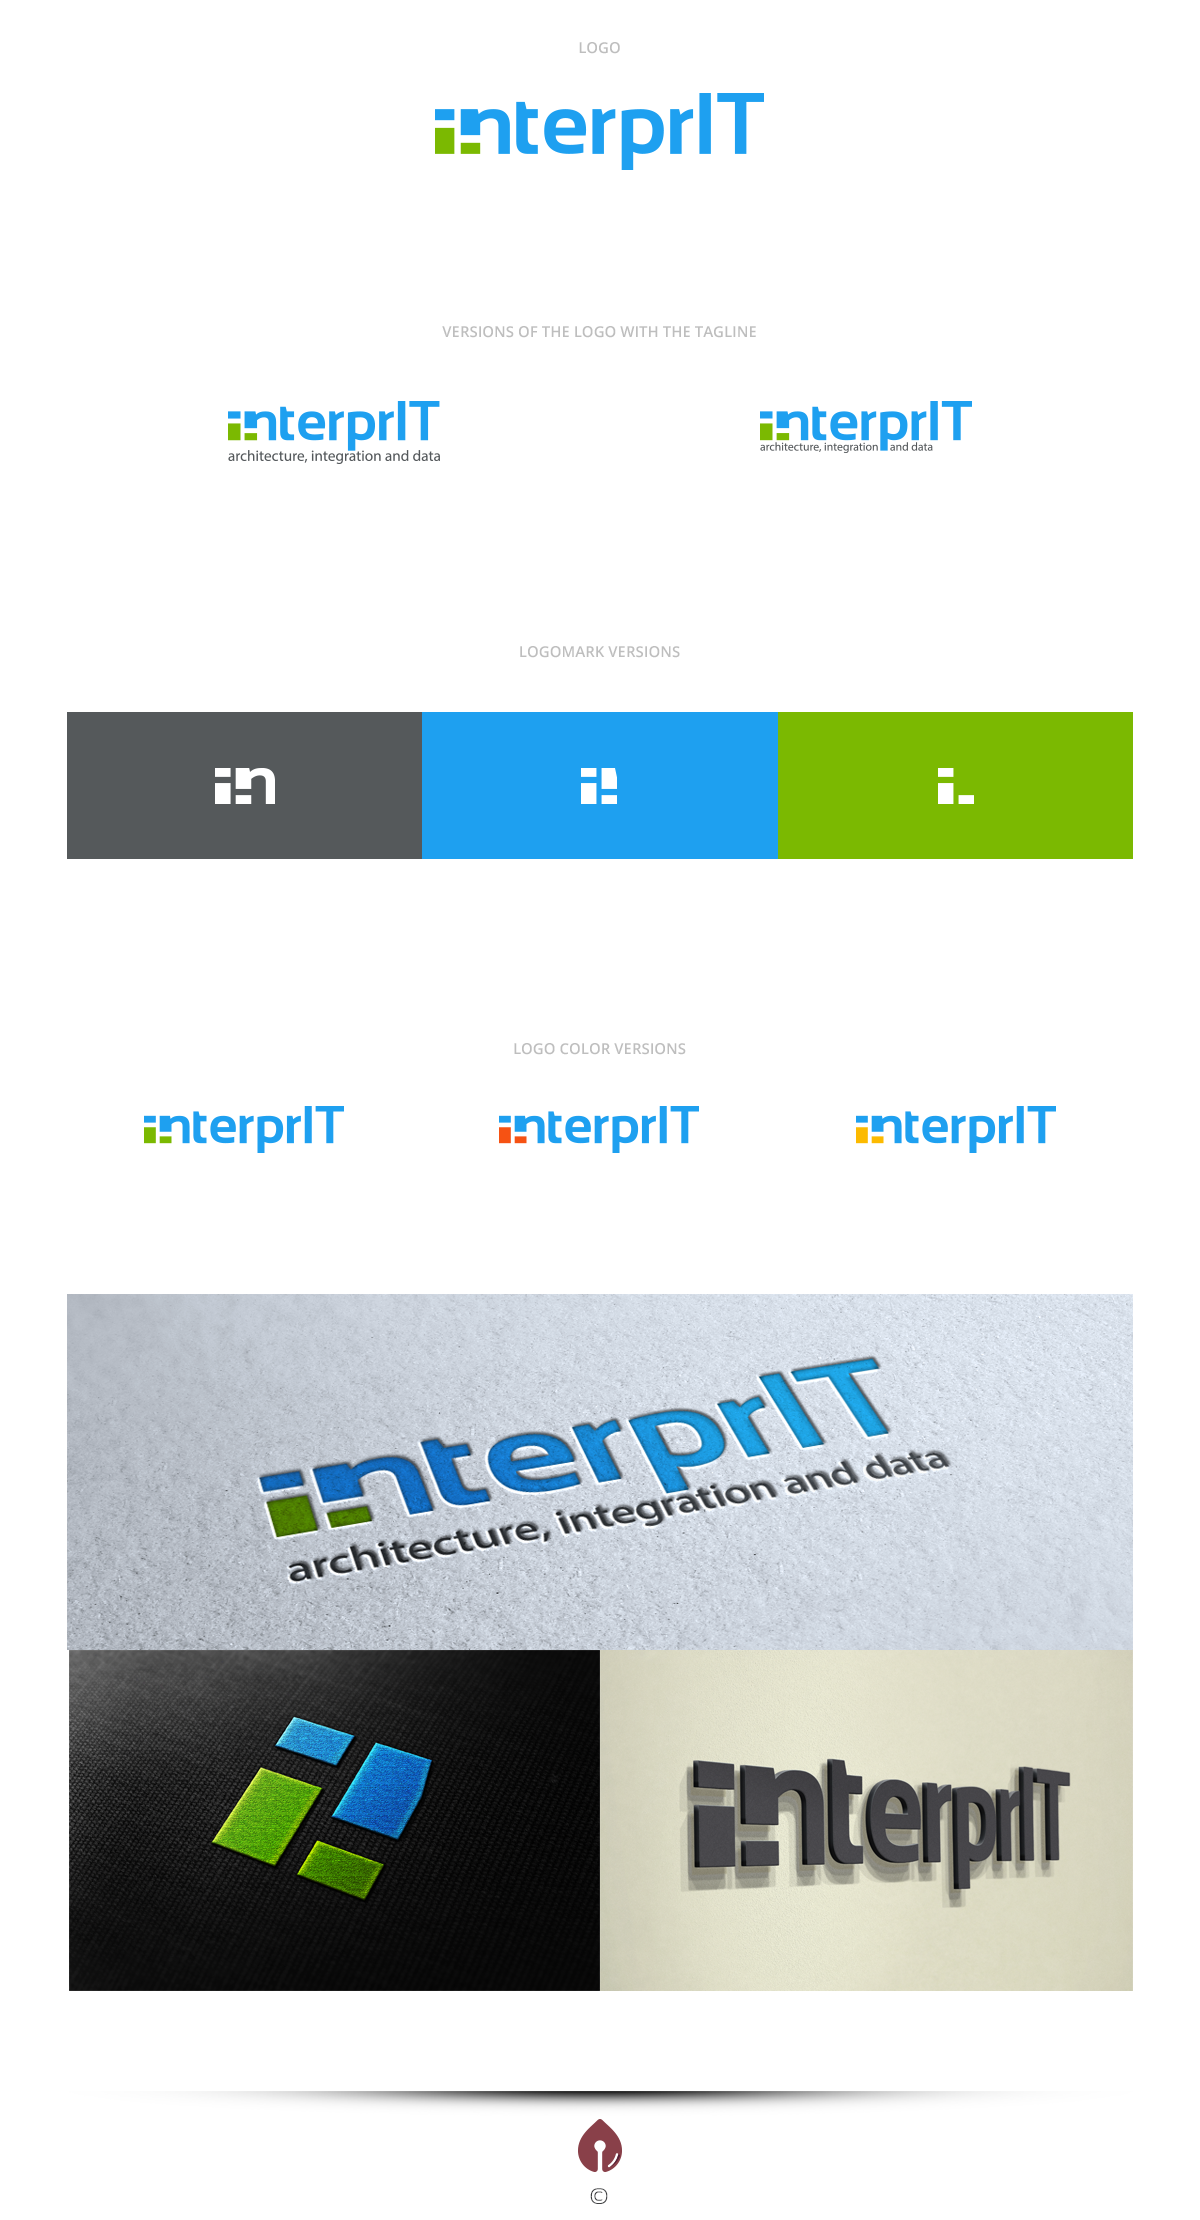 Help interprIT with a new logo